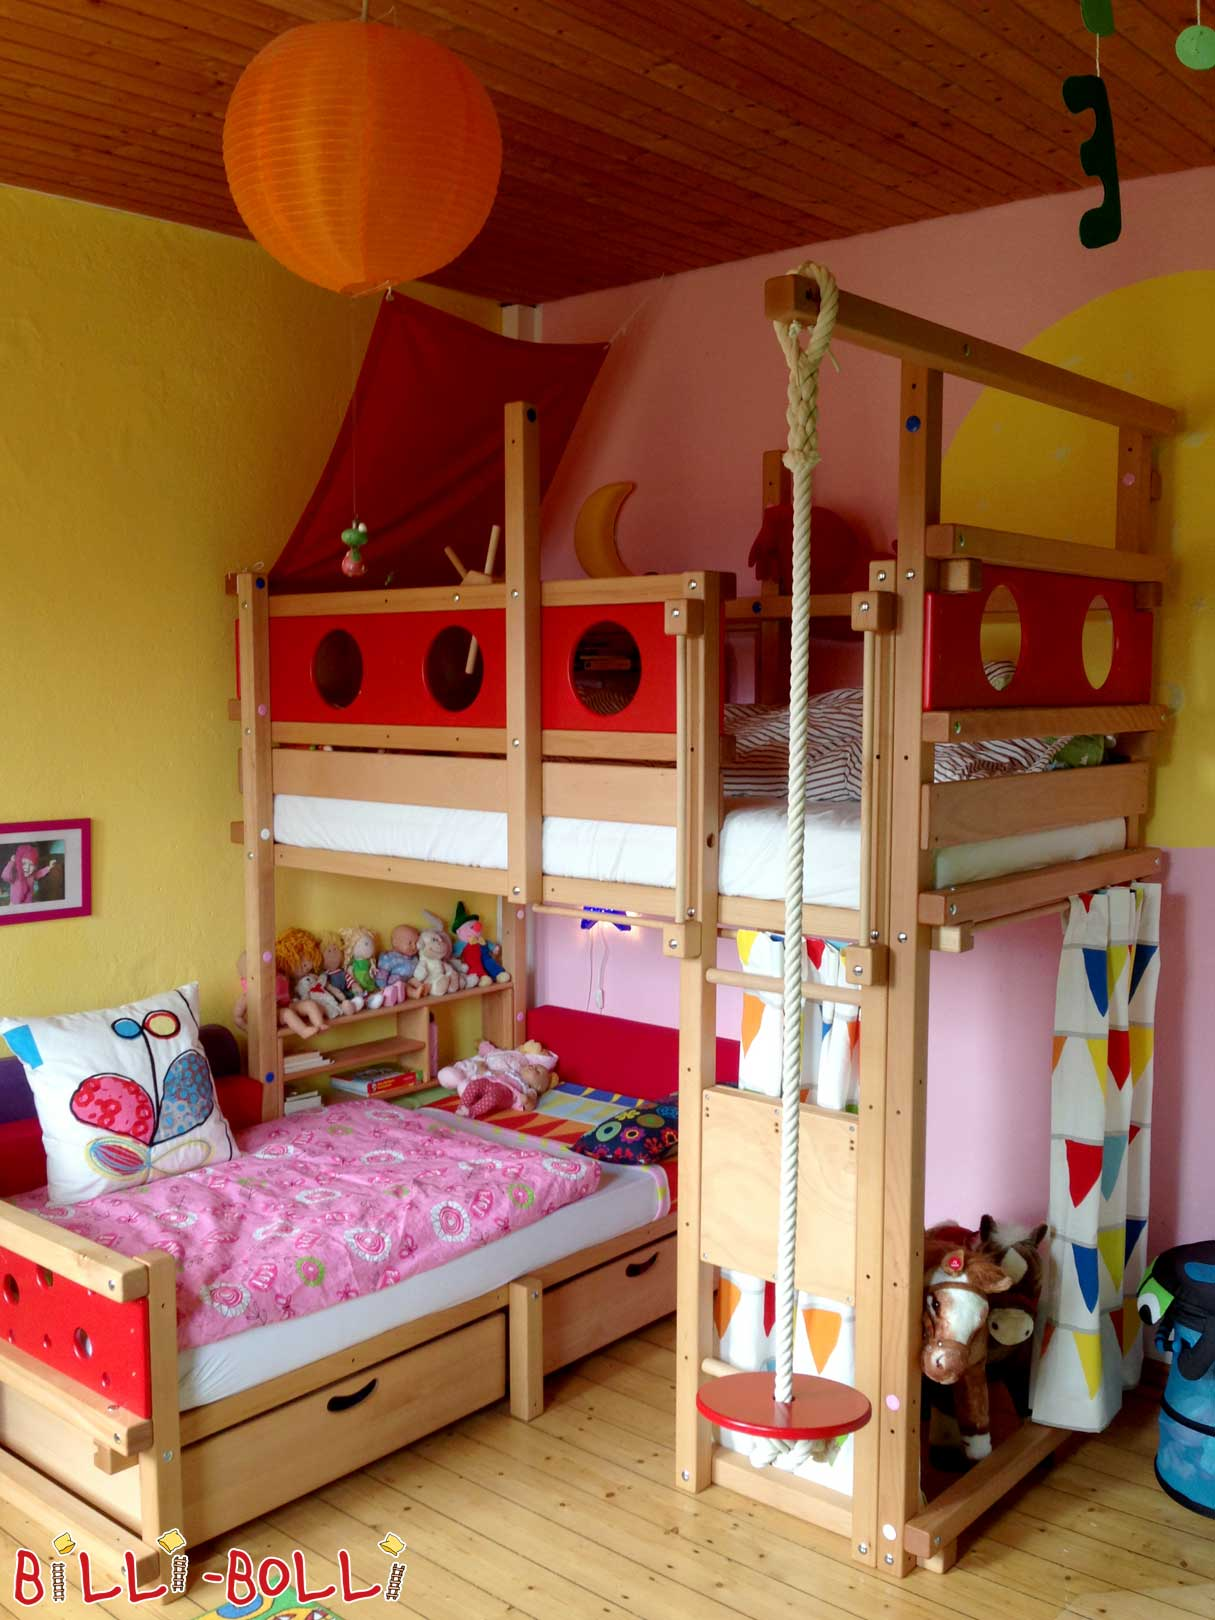 etagenbett ber eck billi bolli kinderm bel. Black Bedroom Furniture Sets. Home Design Ideas